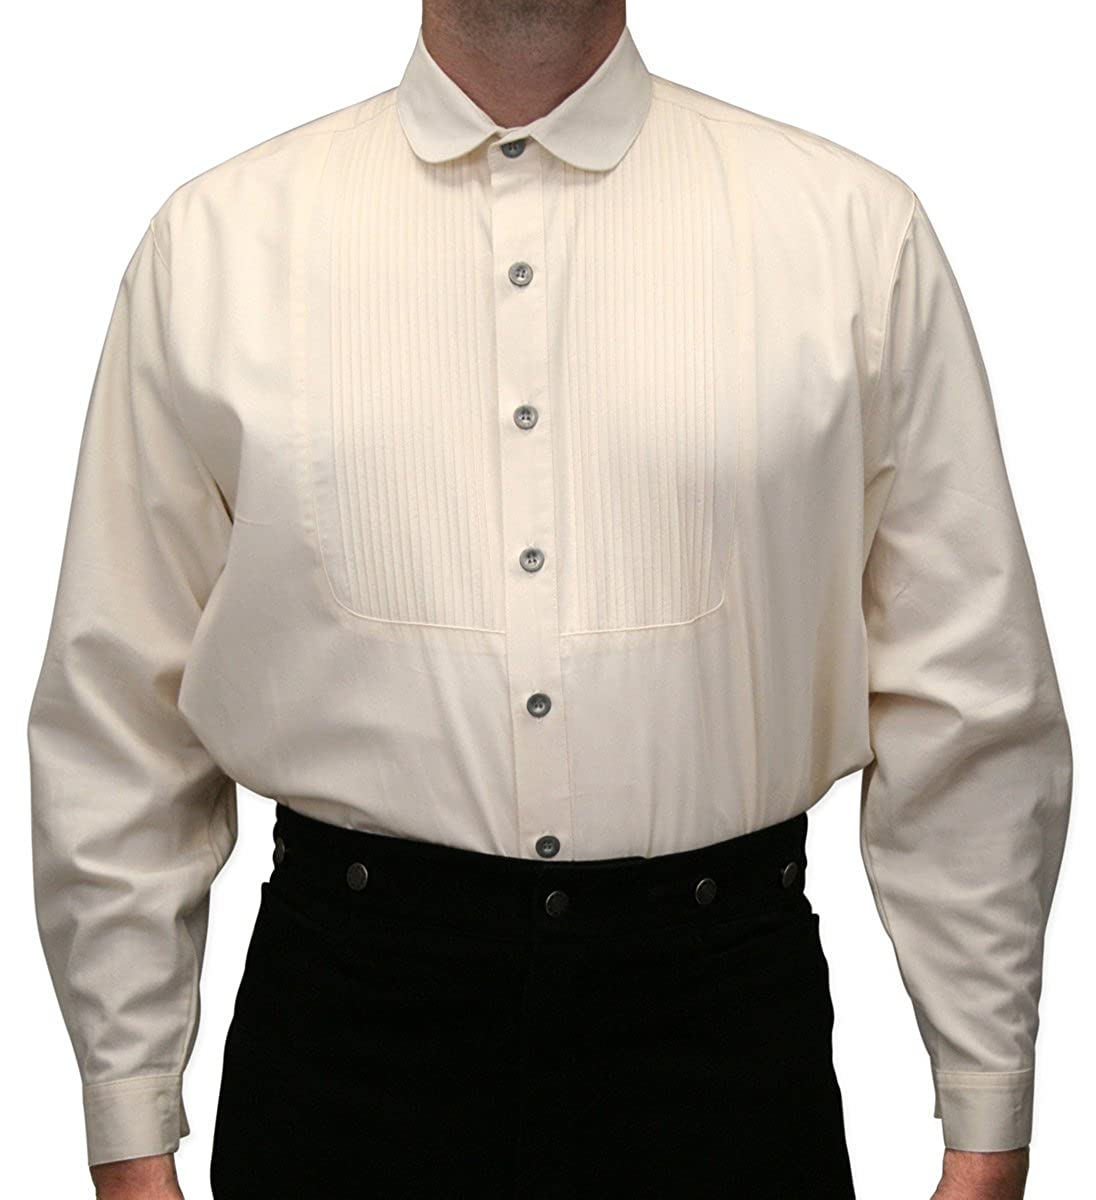 1920s Mens Shirts and Collars History Sinclair Club Collar Dress Shirt $59.95 AT vintagedancer.com